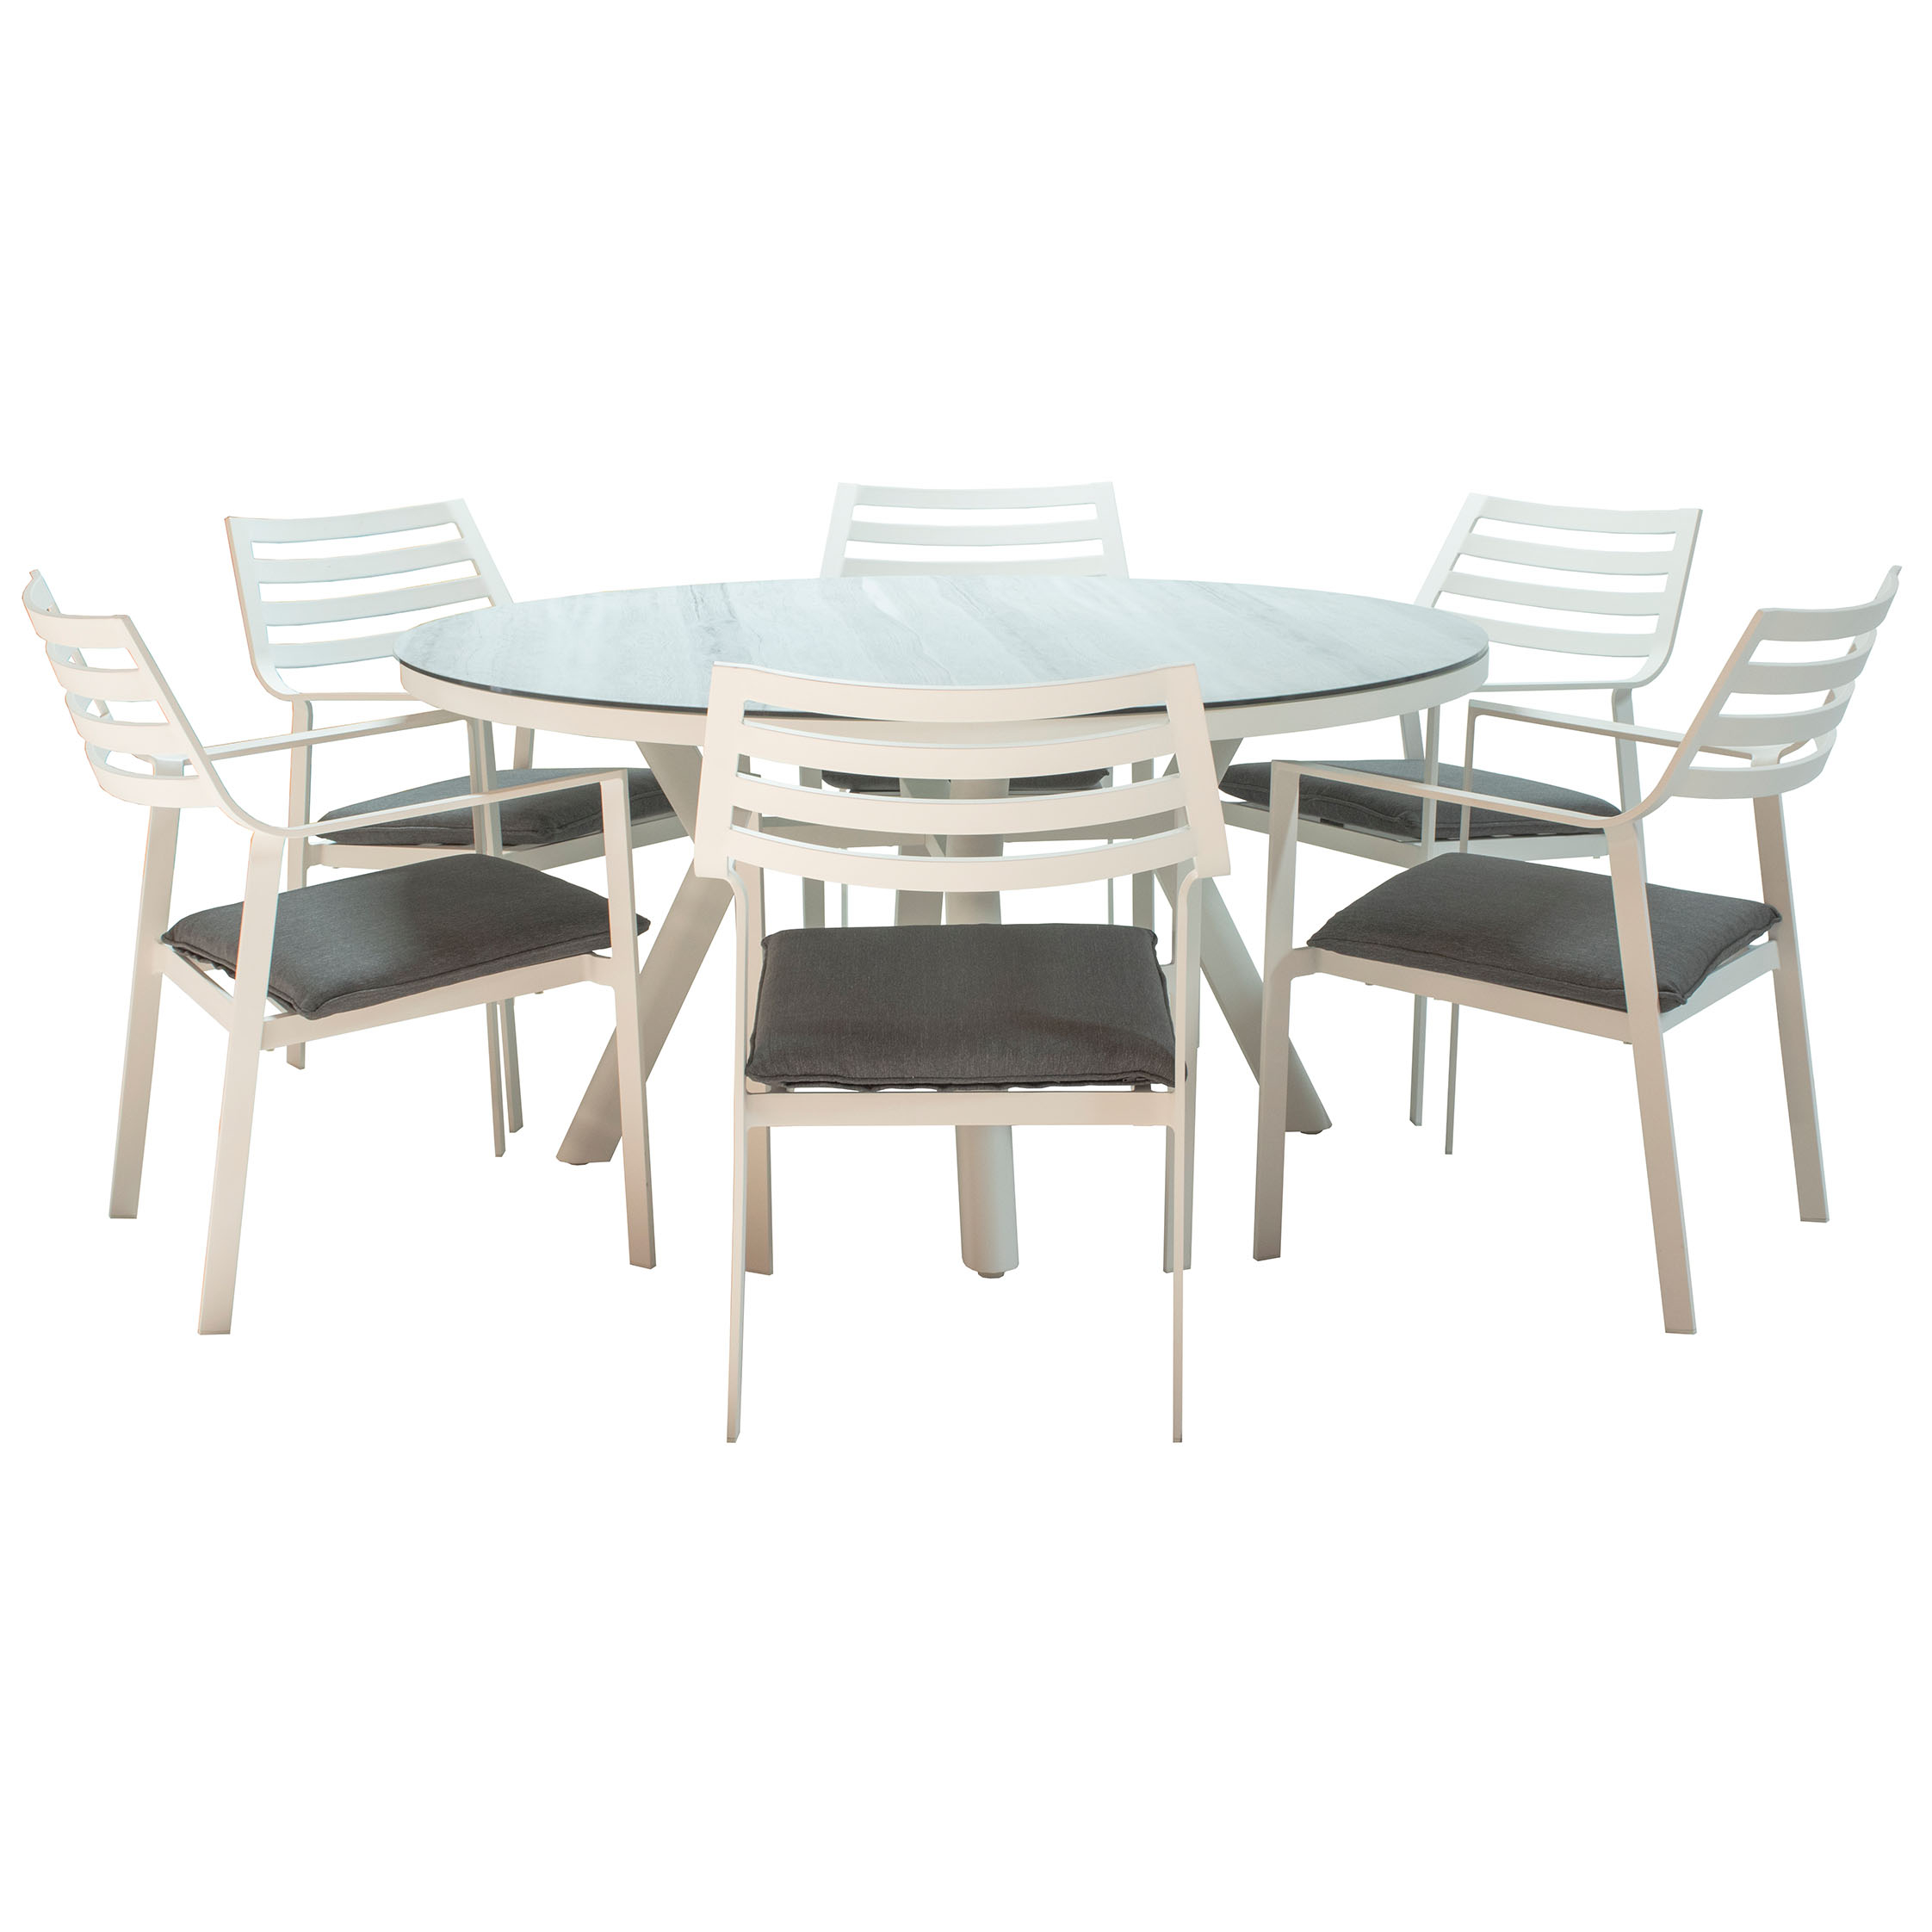 Argos White Dining Table And 6 Chairs: White Dining Table Set Argos • Faucet Ideas Site